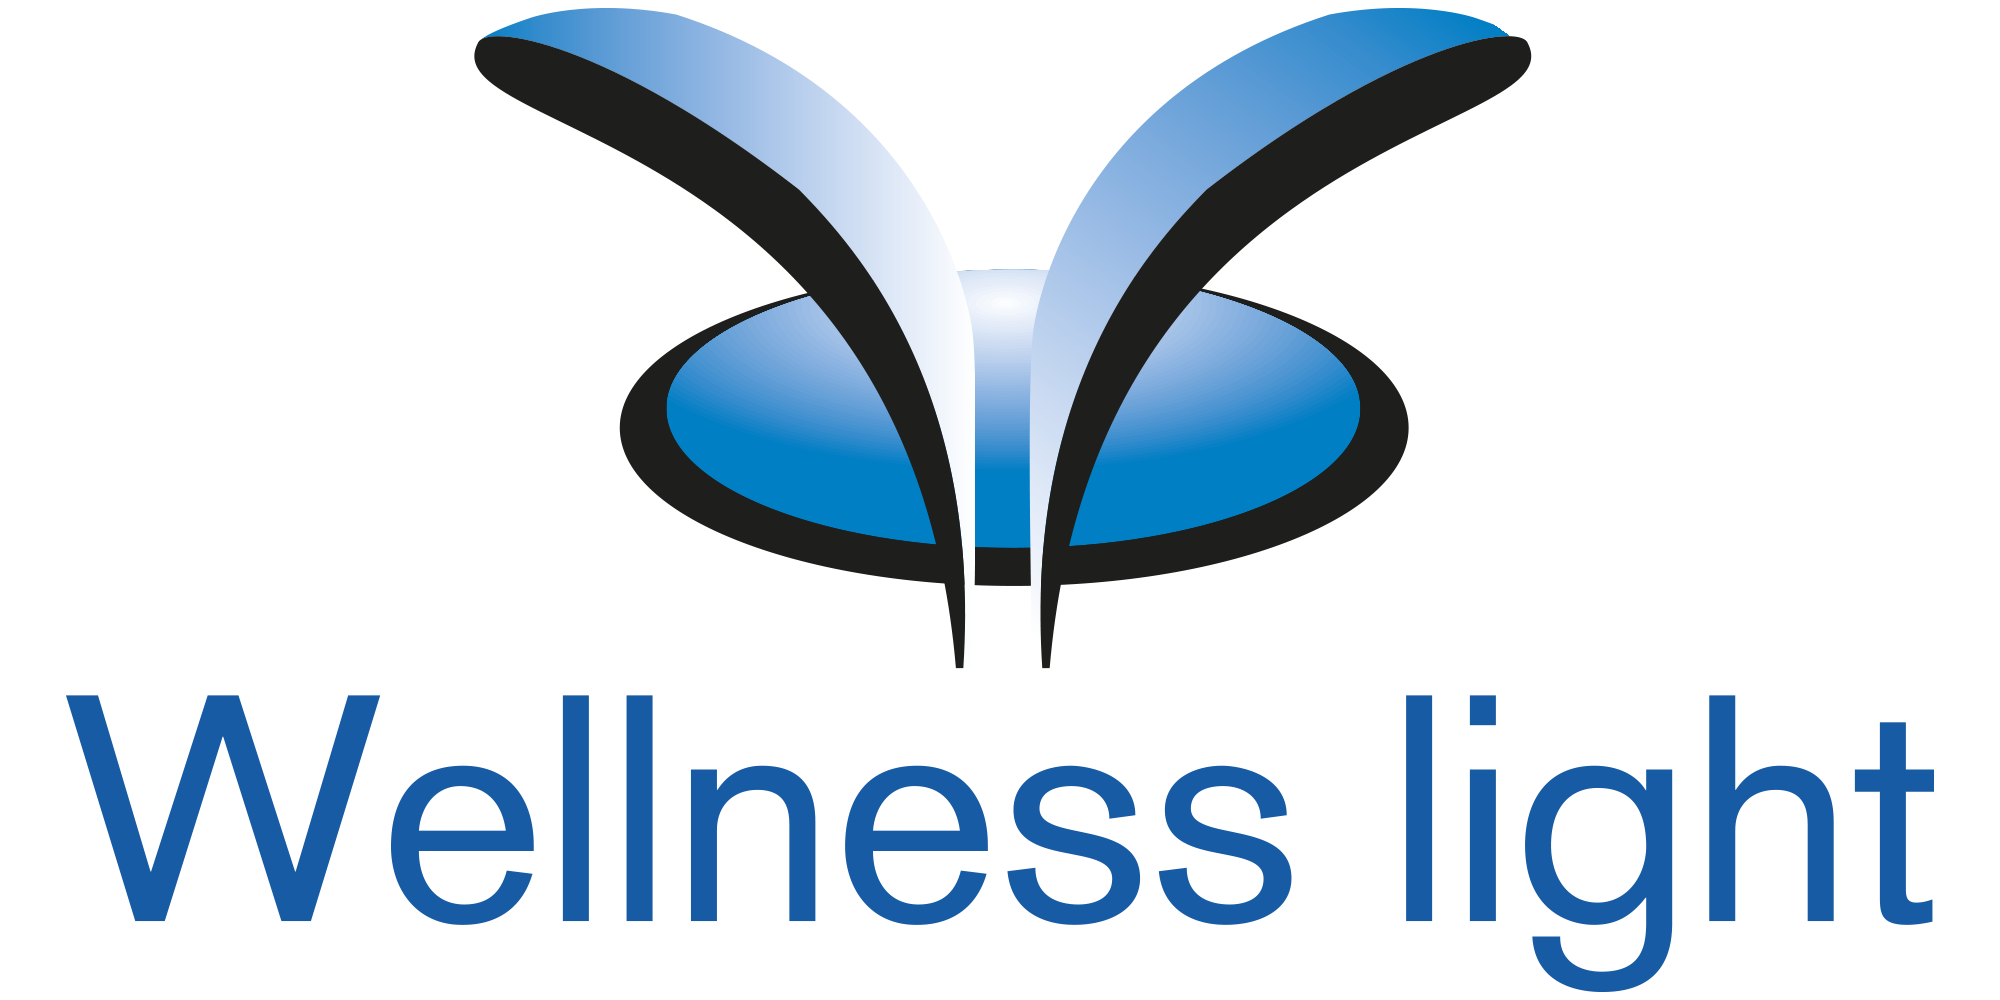 [Translate to English:] Wellness light